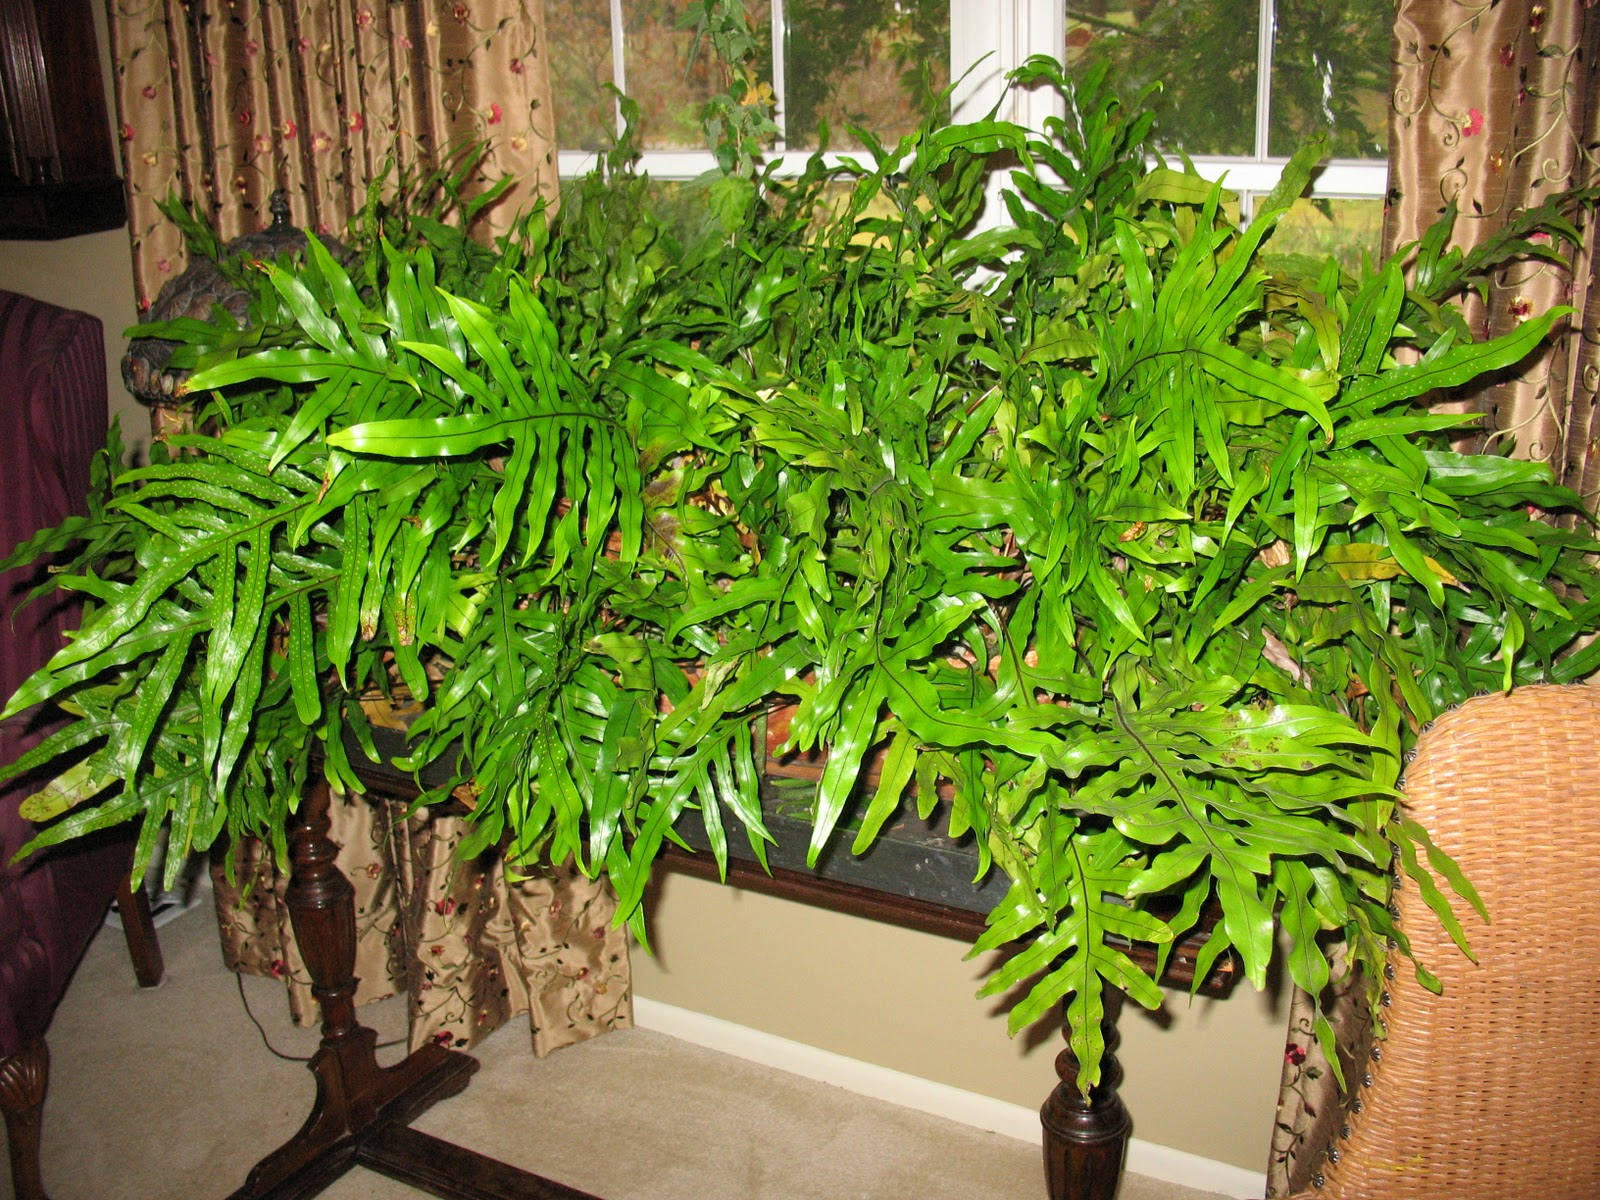 Large house plants my view of the honeypot i like big plants gallery for gt types of large - Tall house plants ...